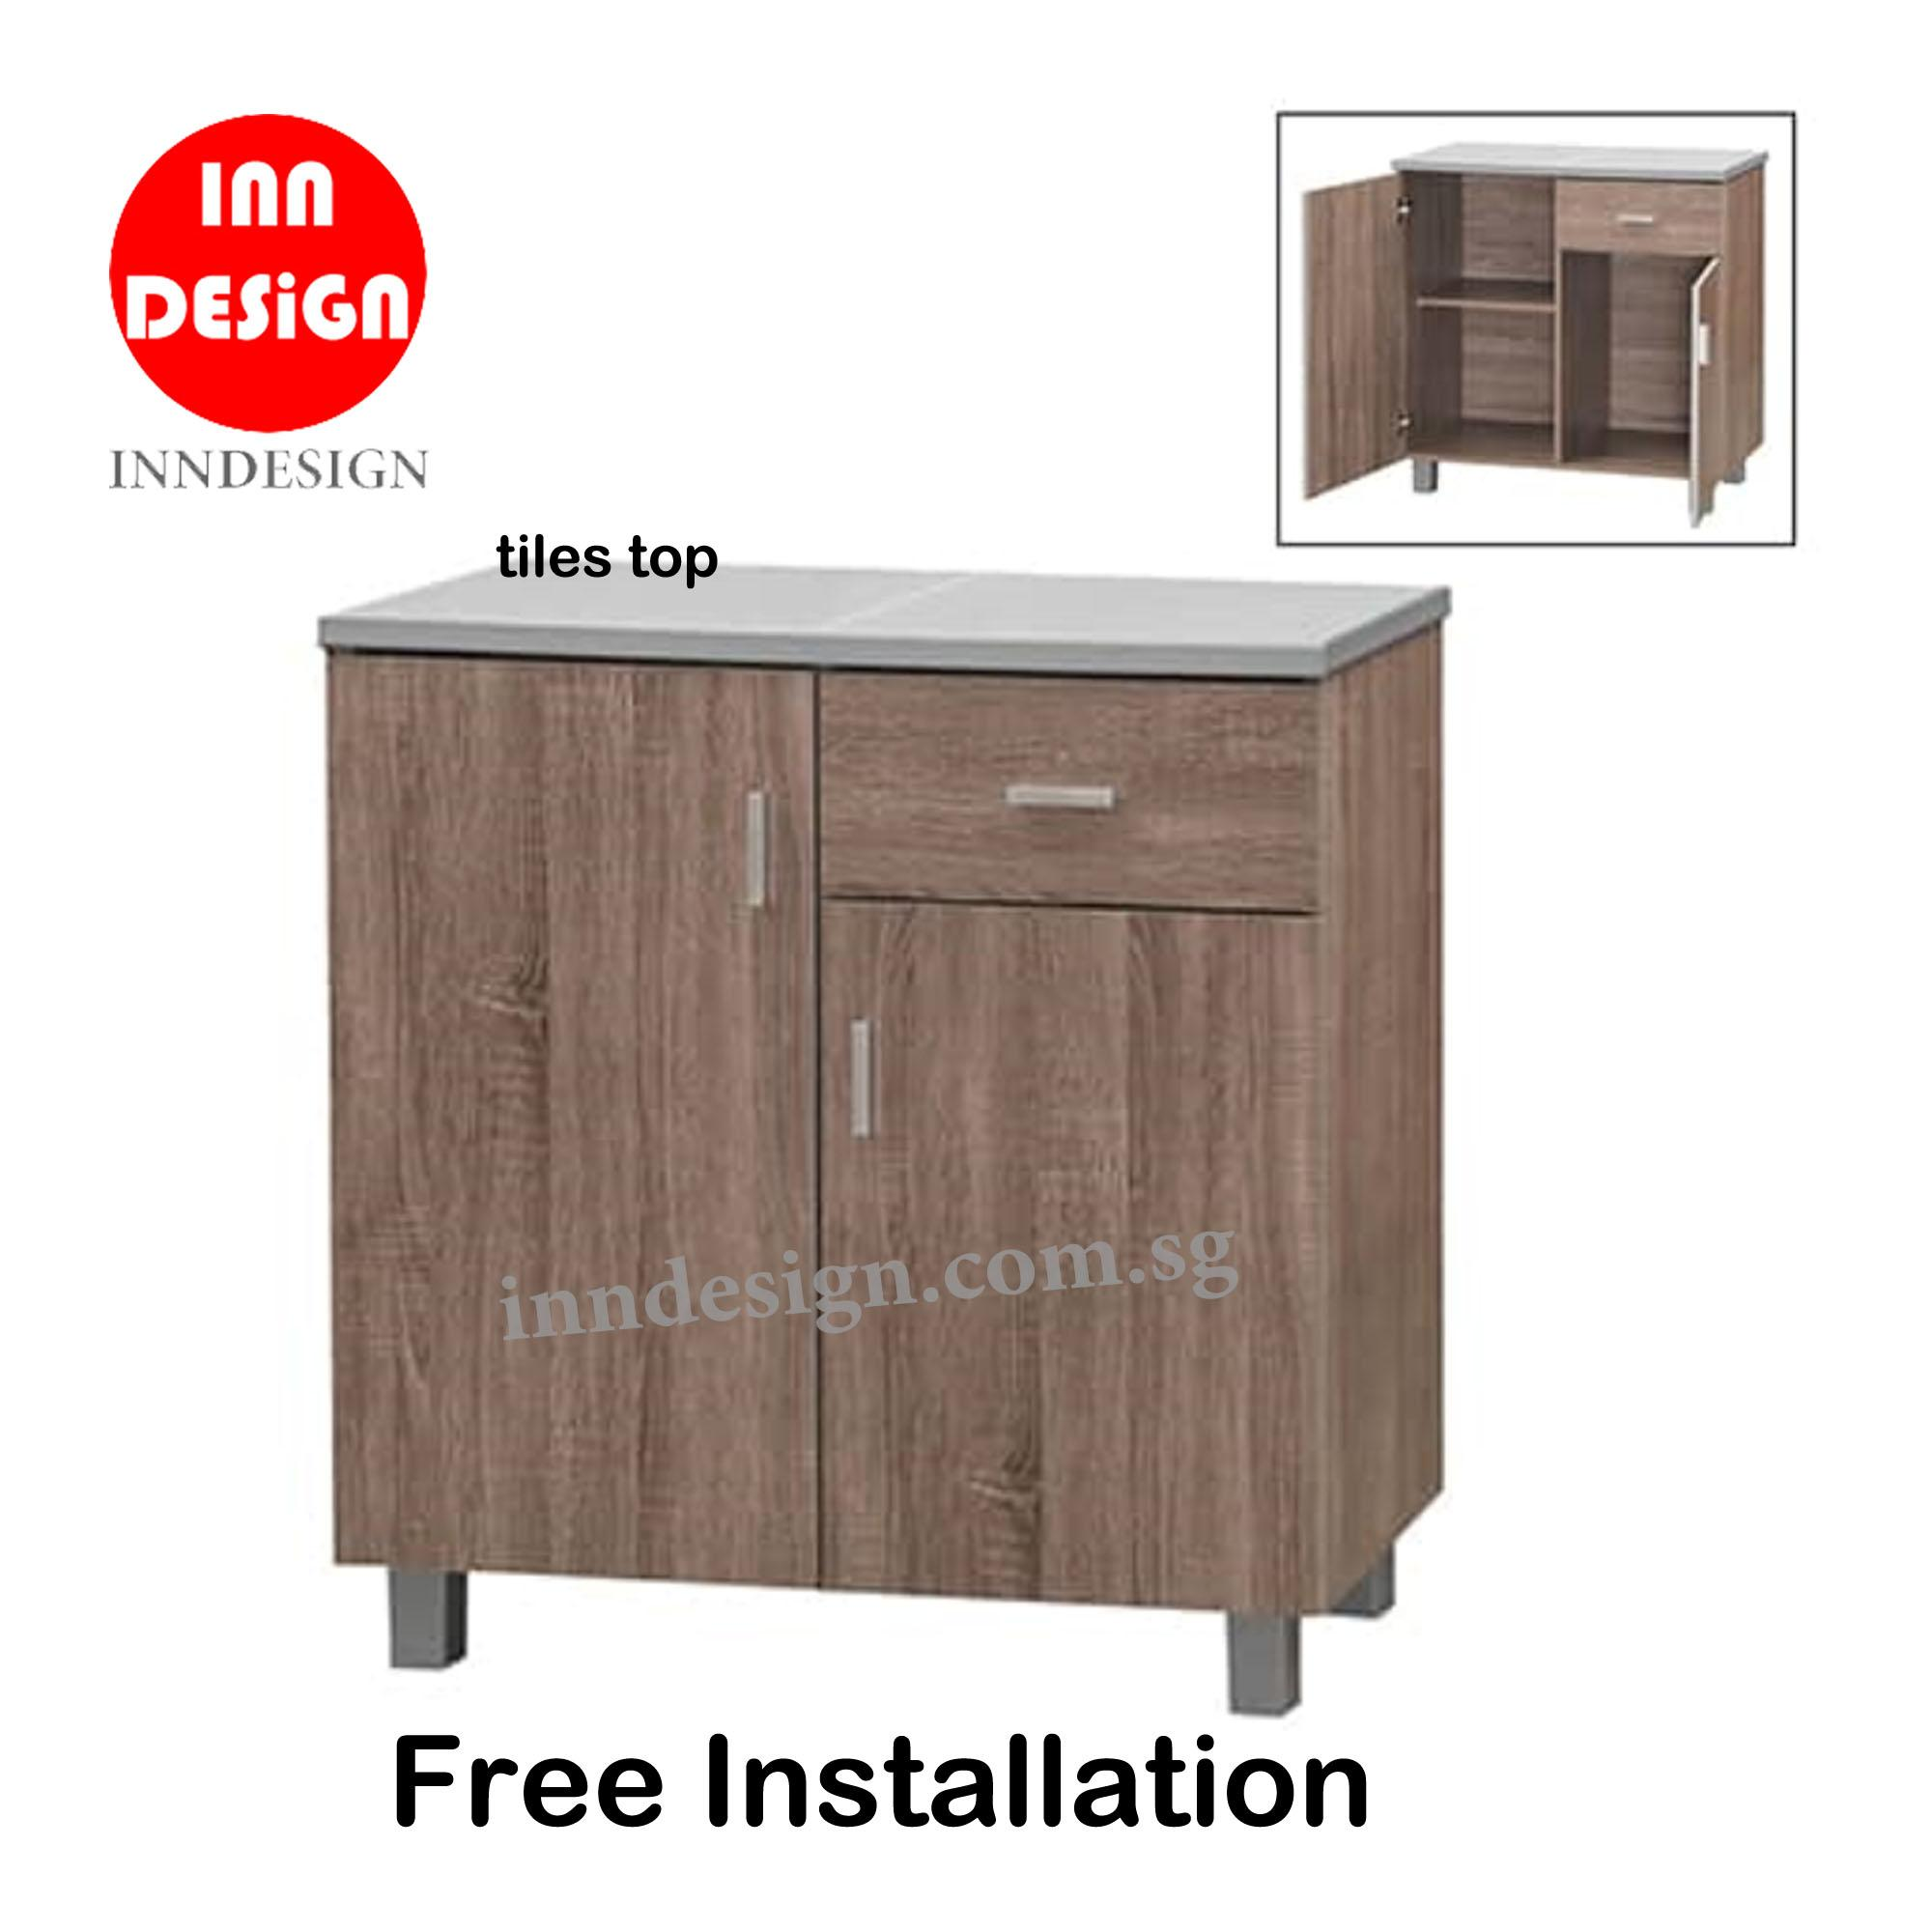 Dew 2 Doors Kitchen Cabinet With Tiles Top (Free Delivery and Installation)